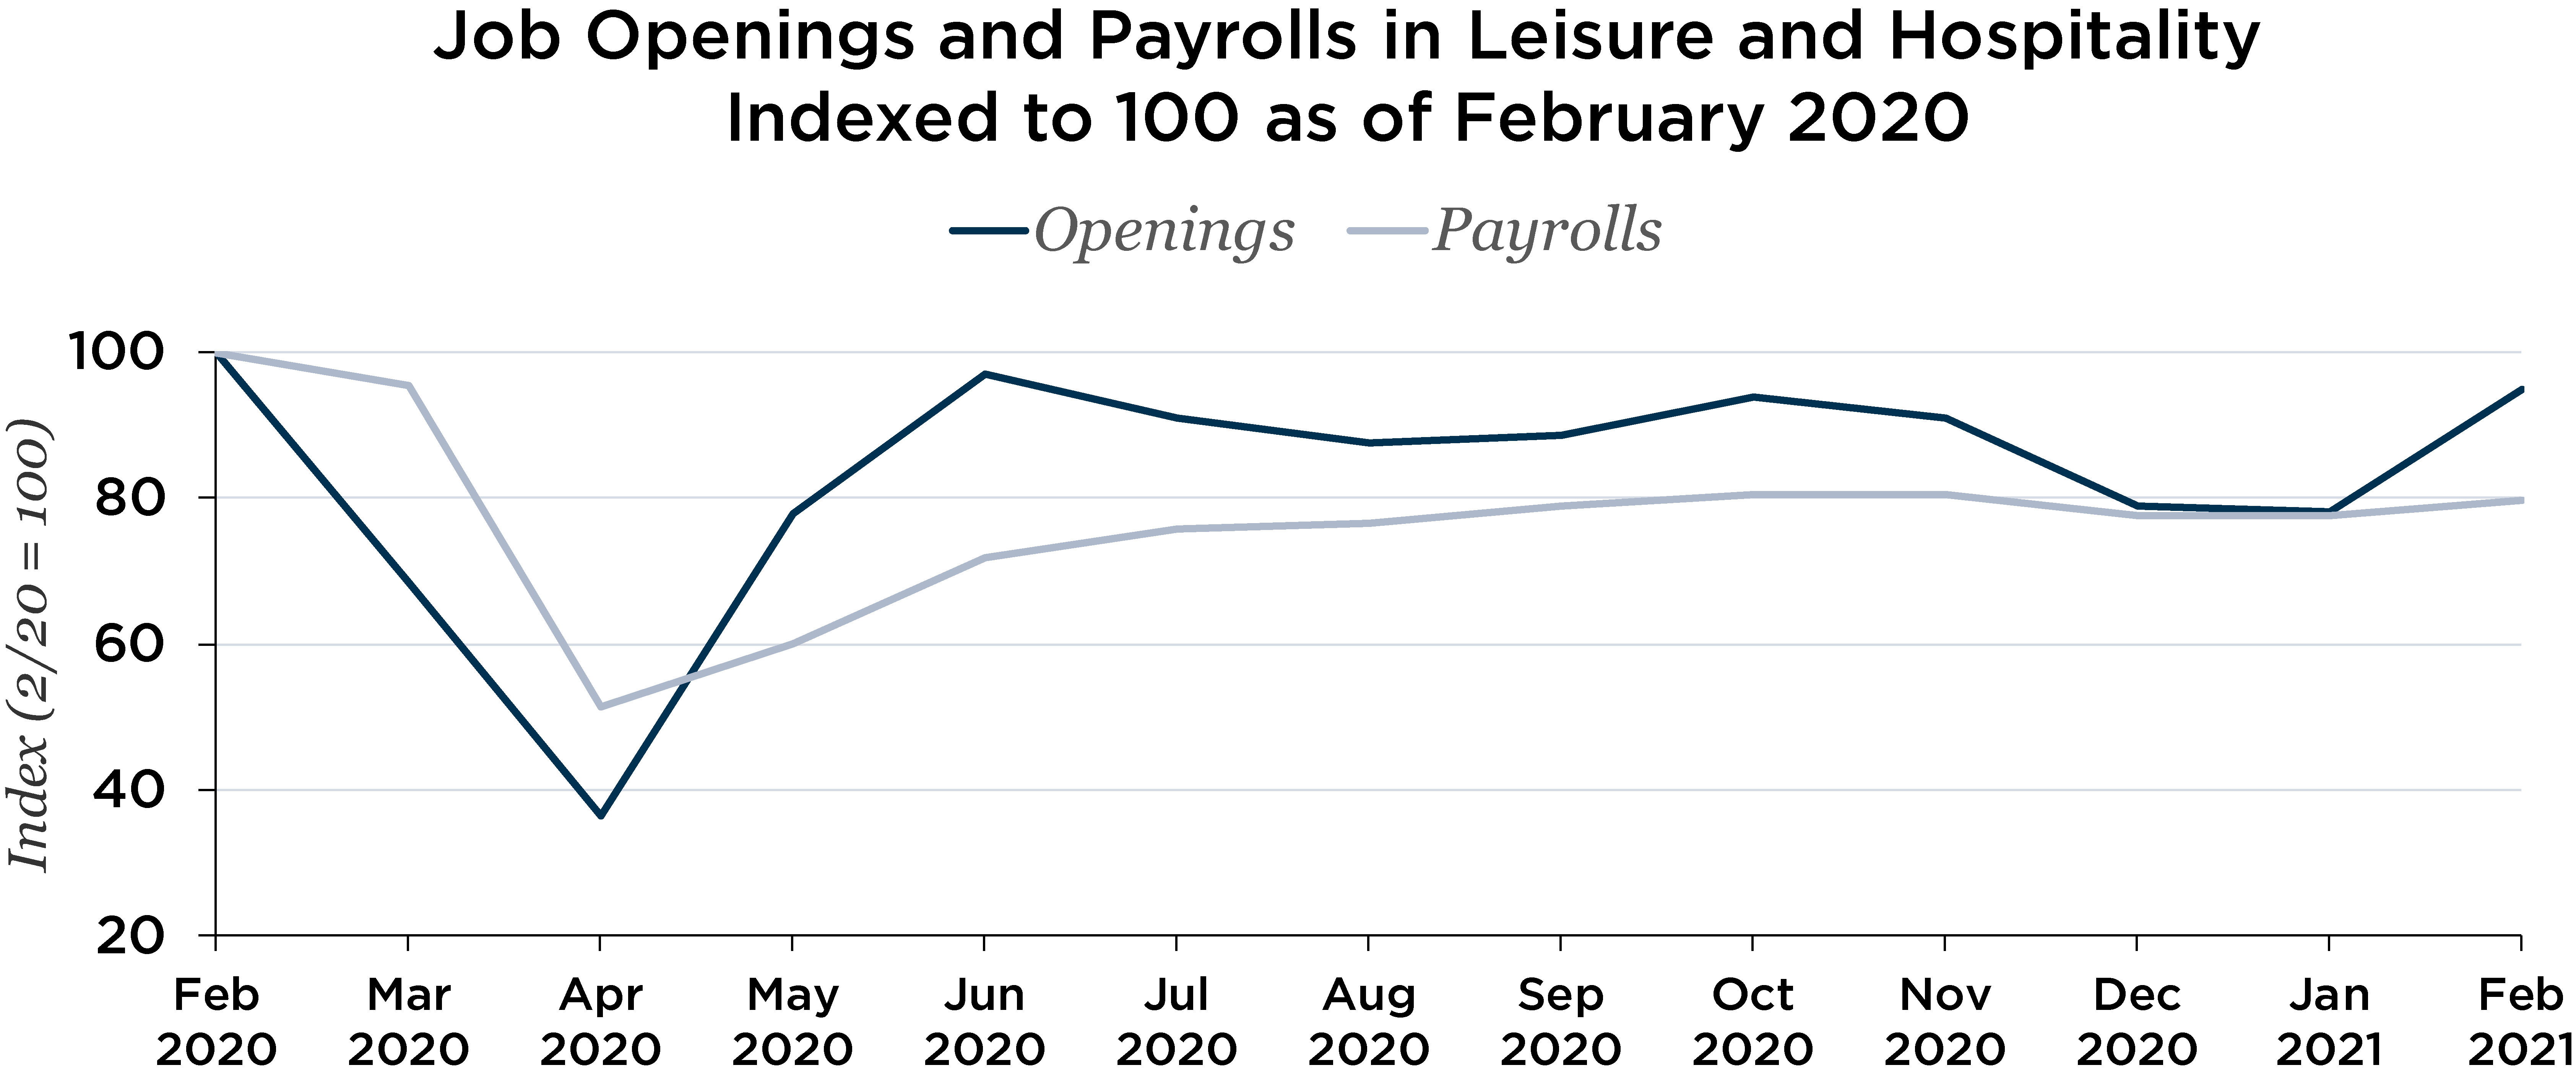 Graph depicting job openings and payrolls in leisure and hospitality